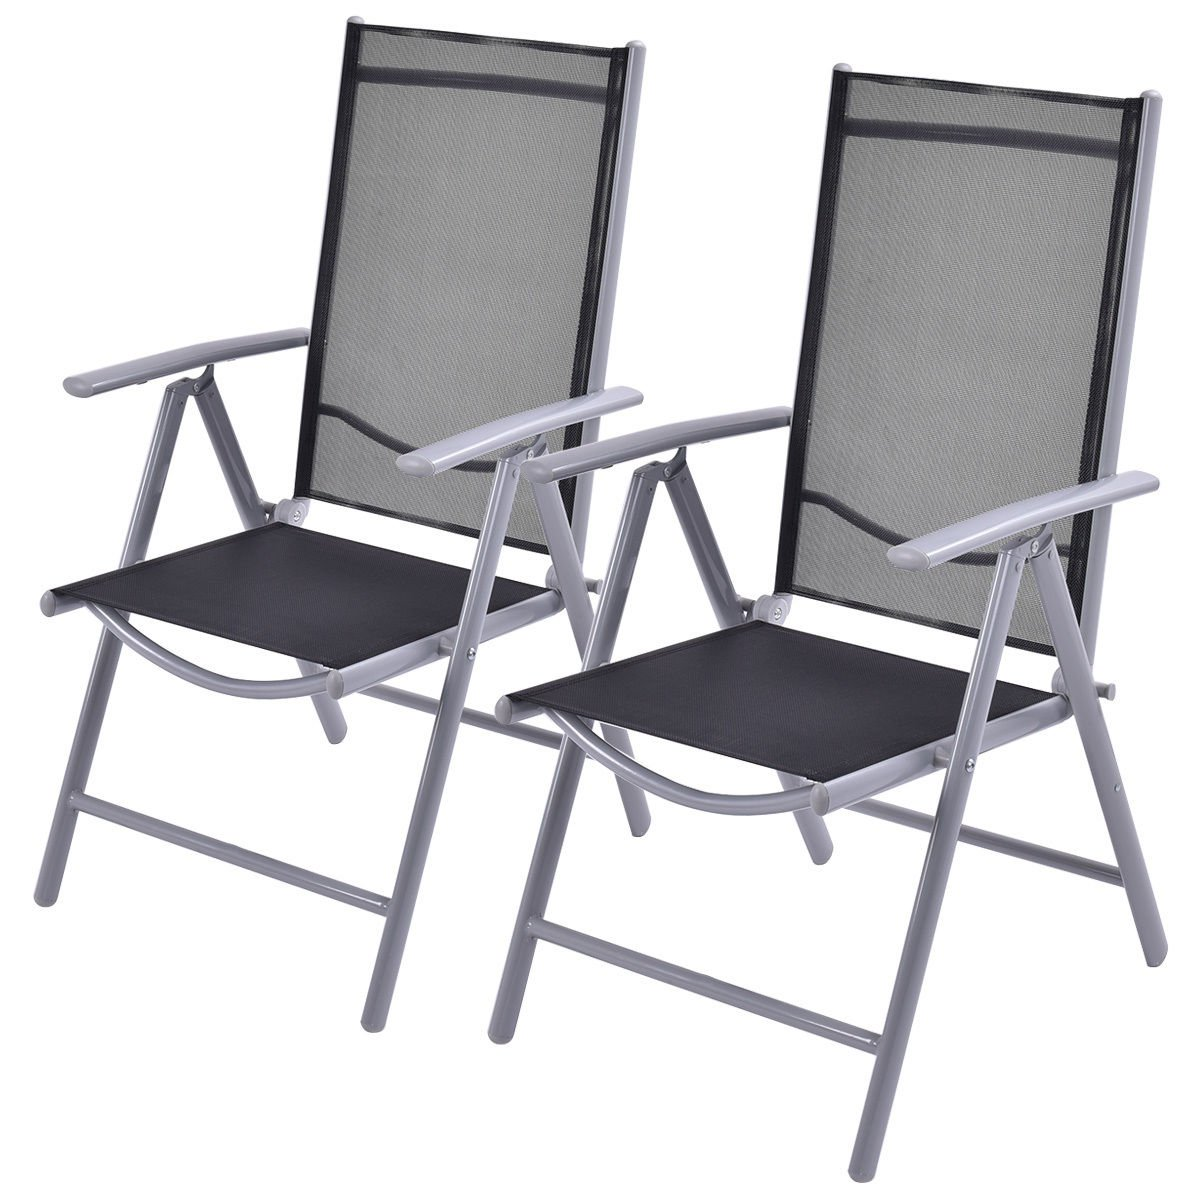 Ordinaire Amazon.com : Giantex Set Of 2 Patio Folding Chairs Adjustable Reclining  Indoor Outdoor Garden Pool : Garden U0026 Outdoor